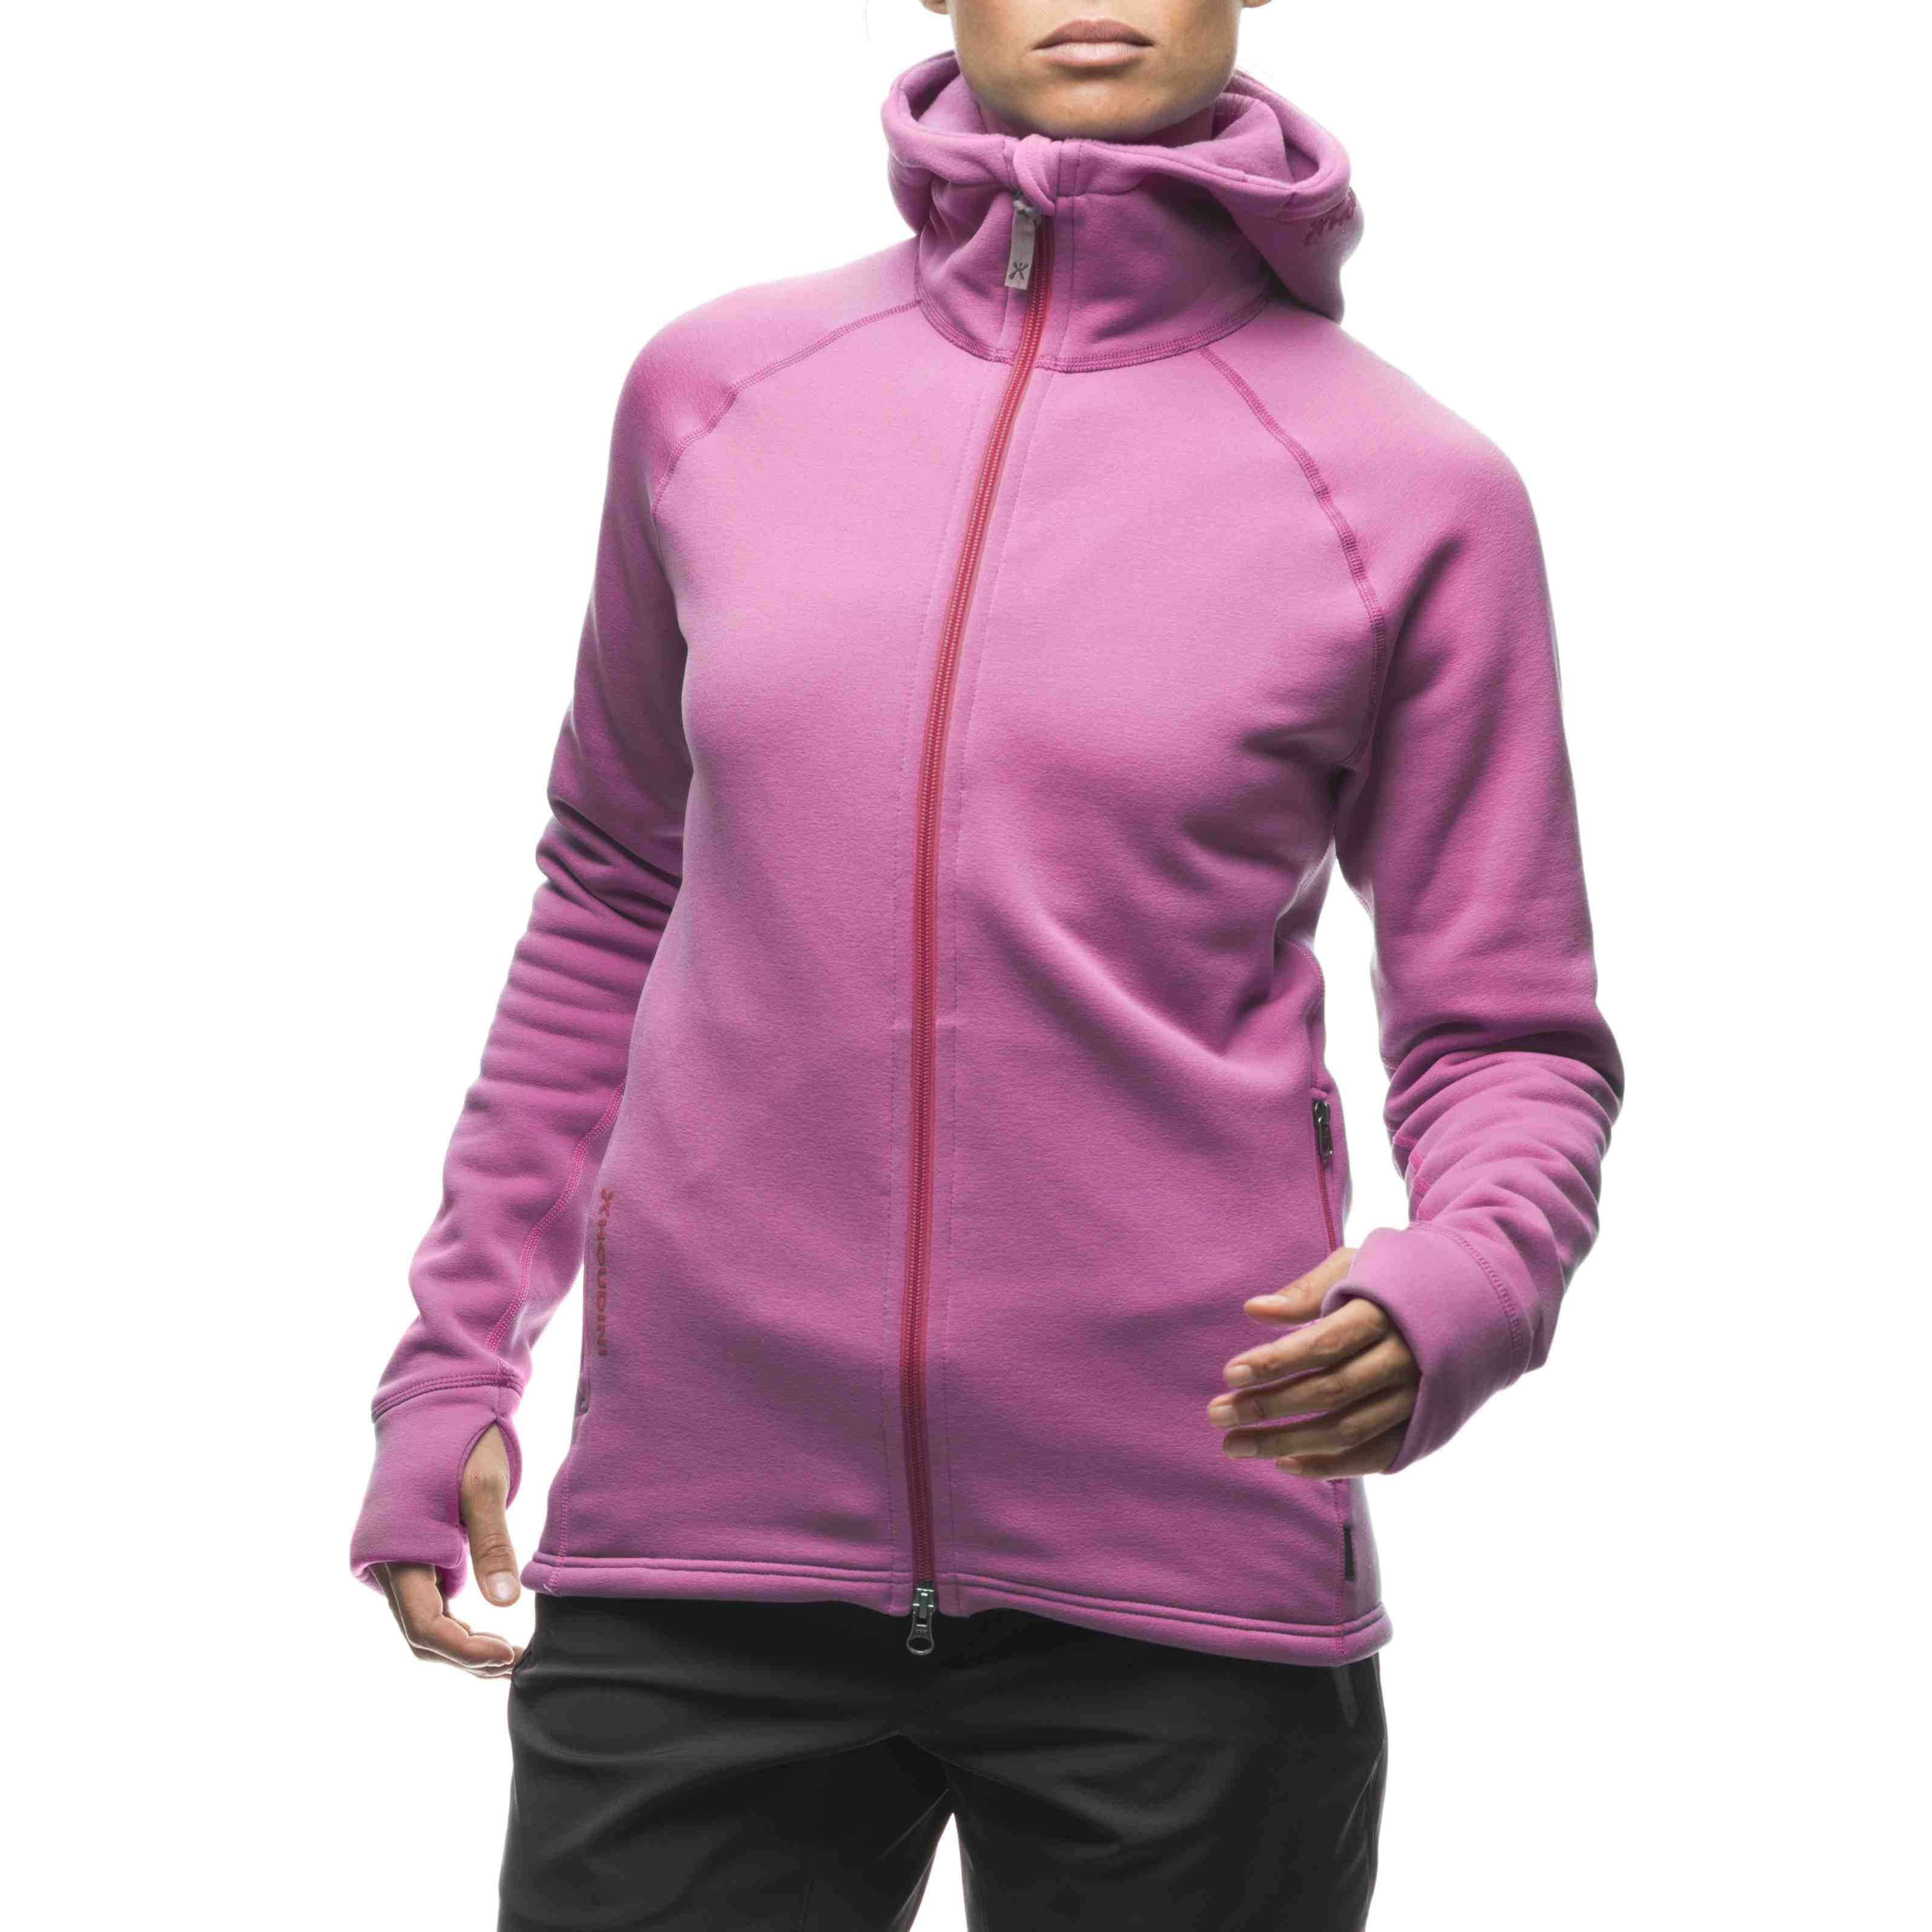 Houdini women's power houdi. Outdoor outfit